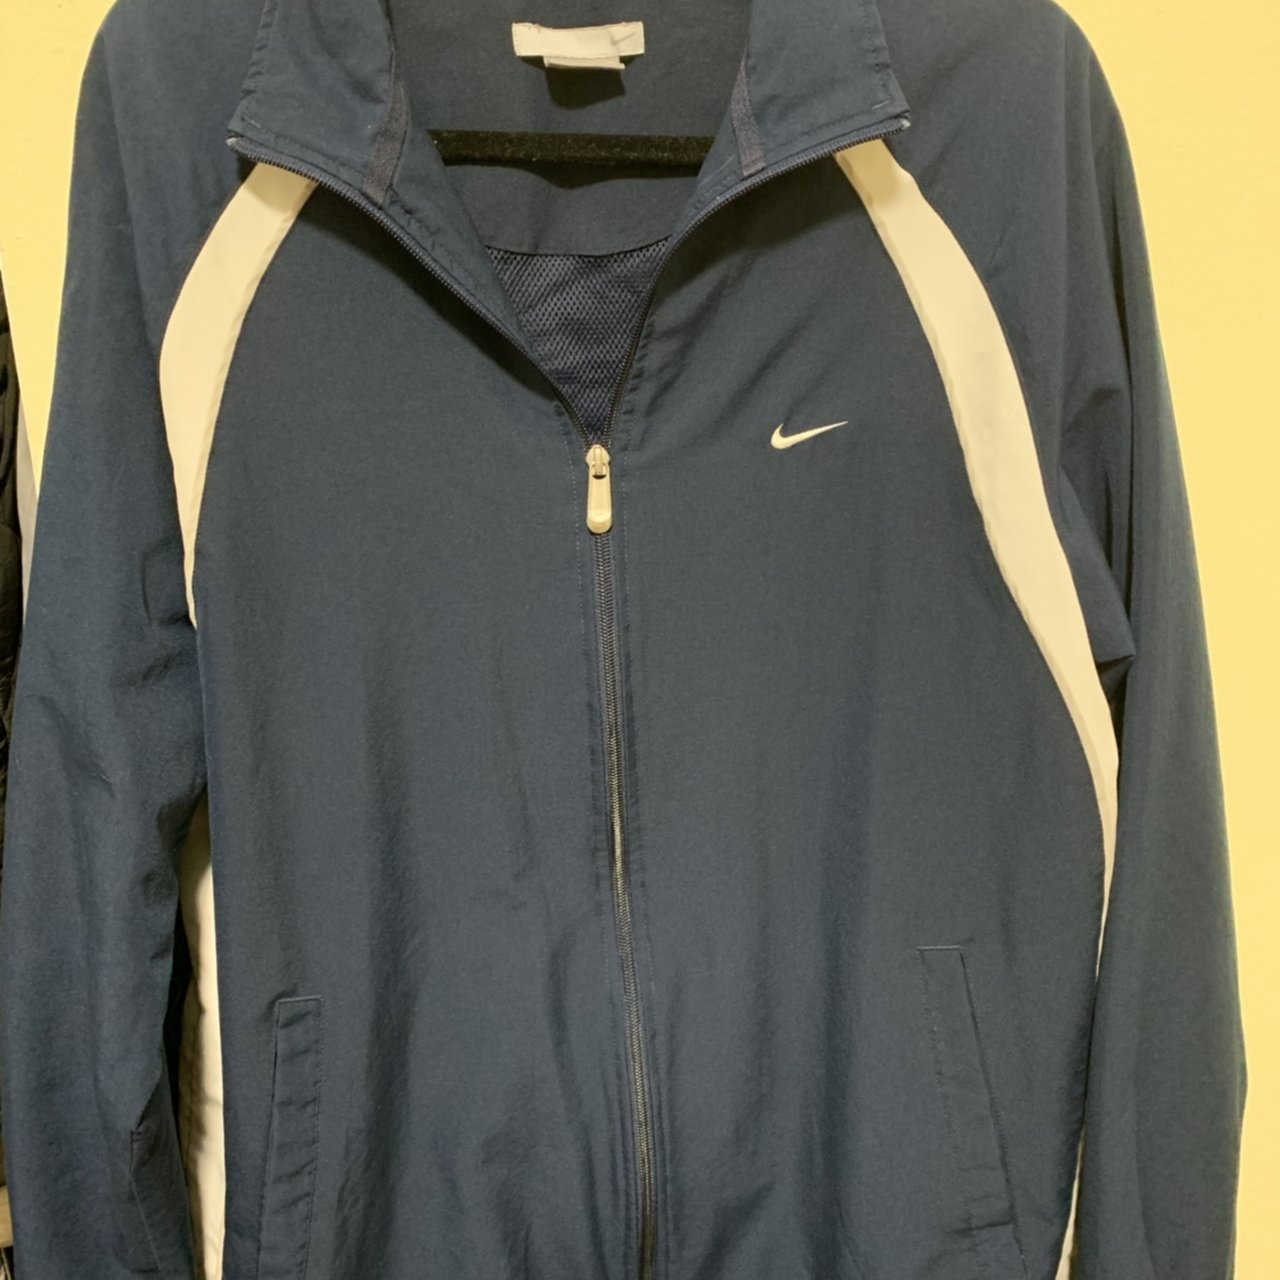 e5a0ba783a Vintage Navy Blue Nike Windbreaker (First pic is washed out